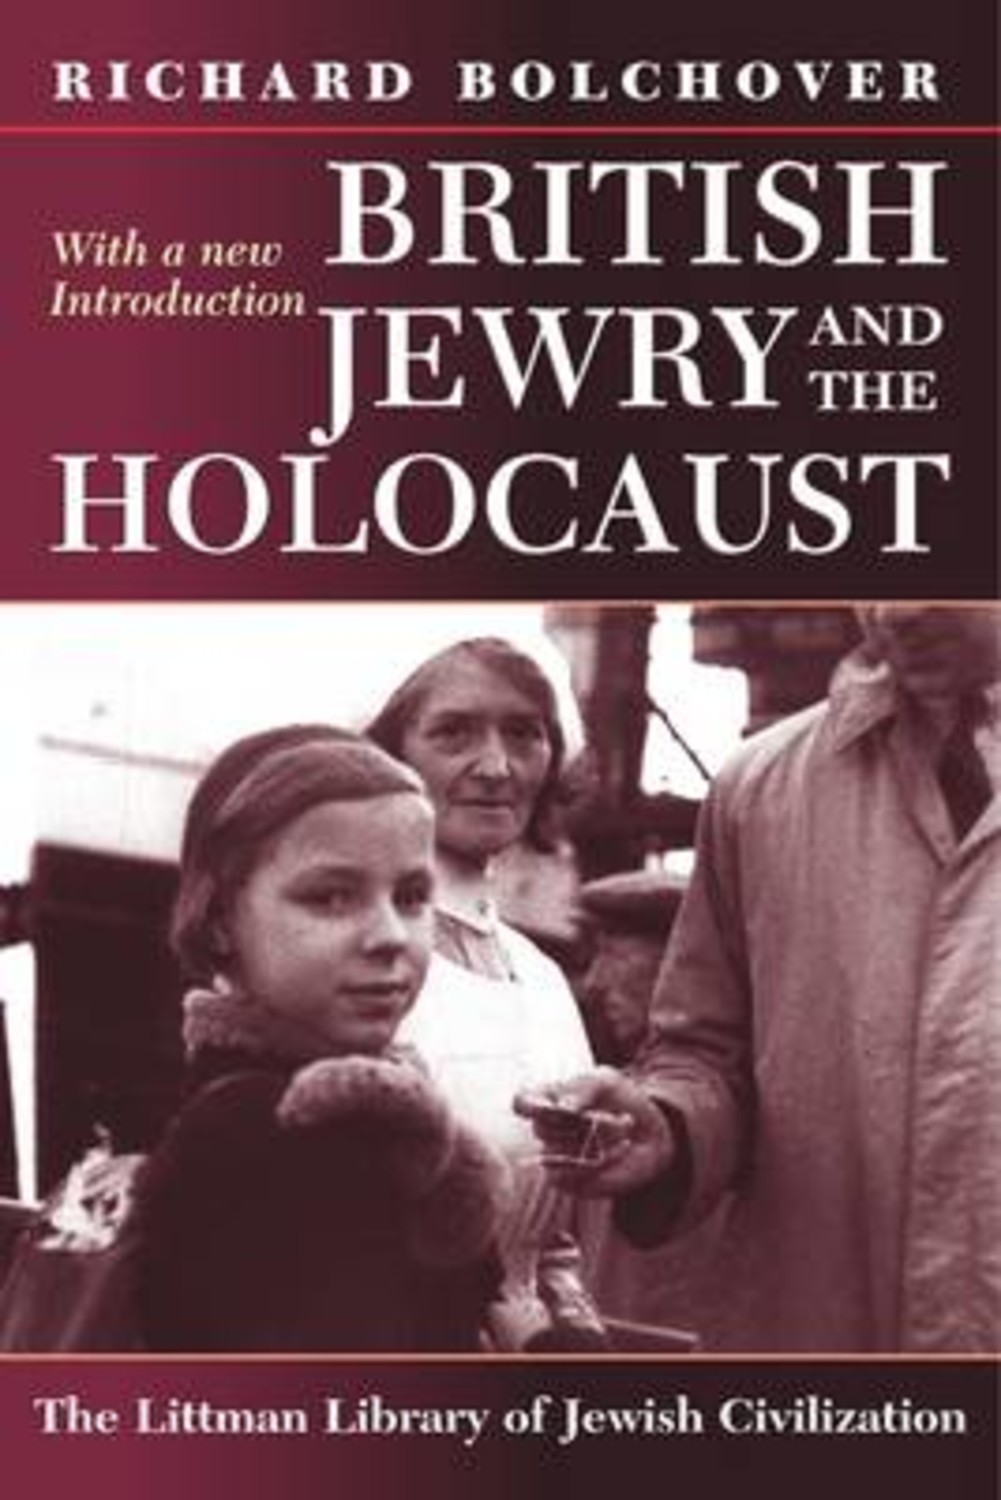 British Jewry and the Holocaust